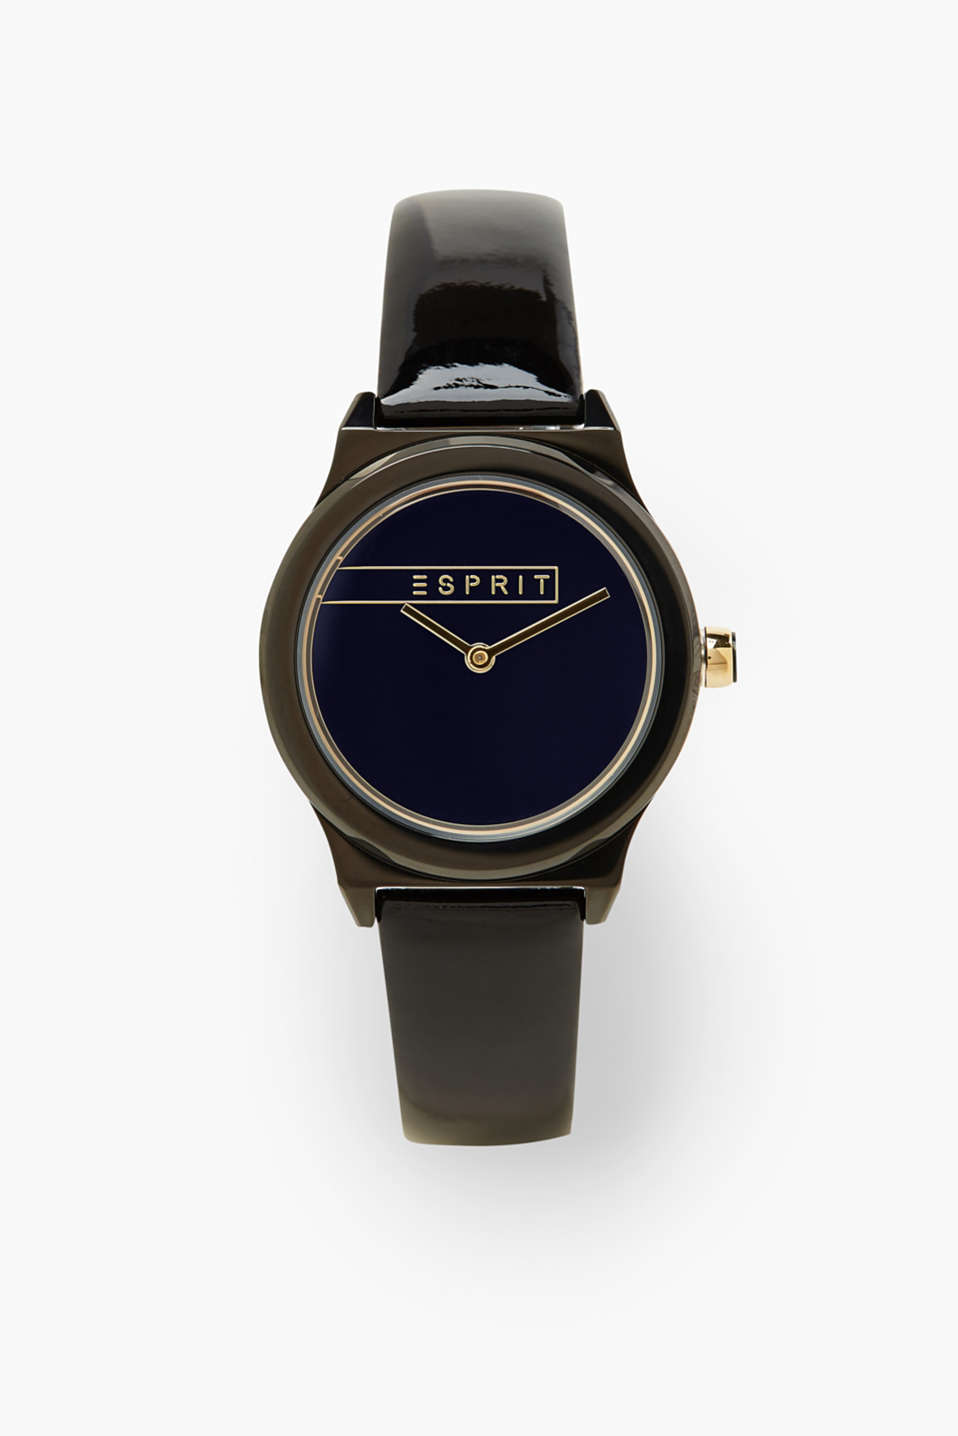 -We love plain colour looks! The high-quality patent strap and the tonal dial give this watch its look.